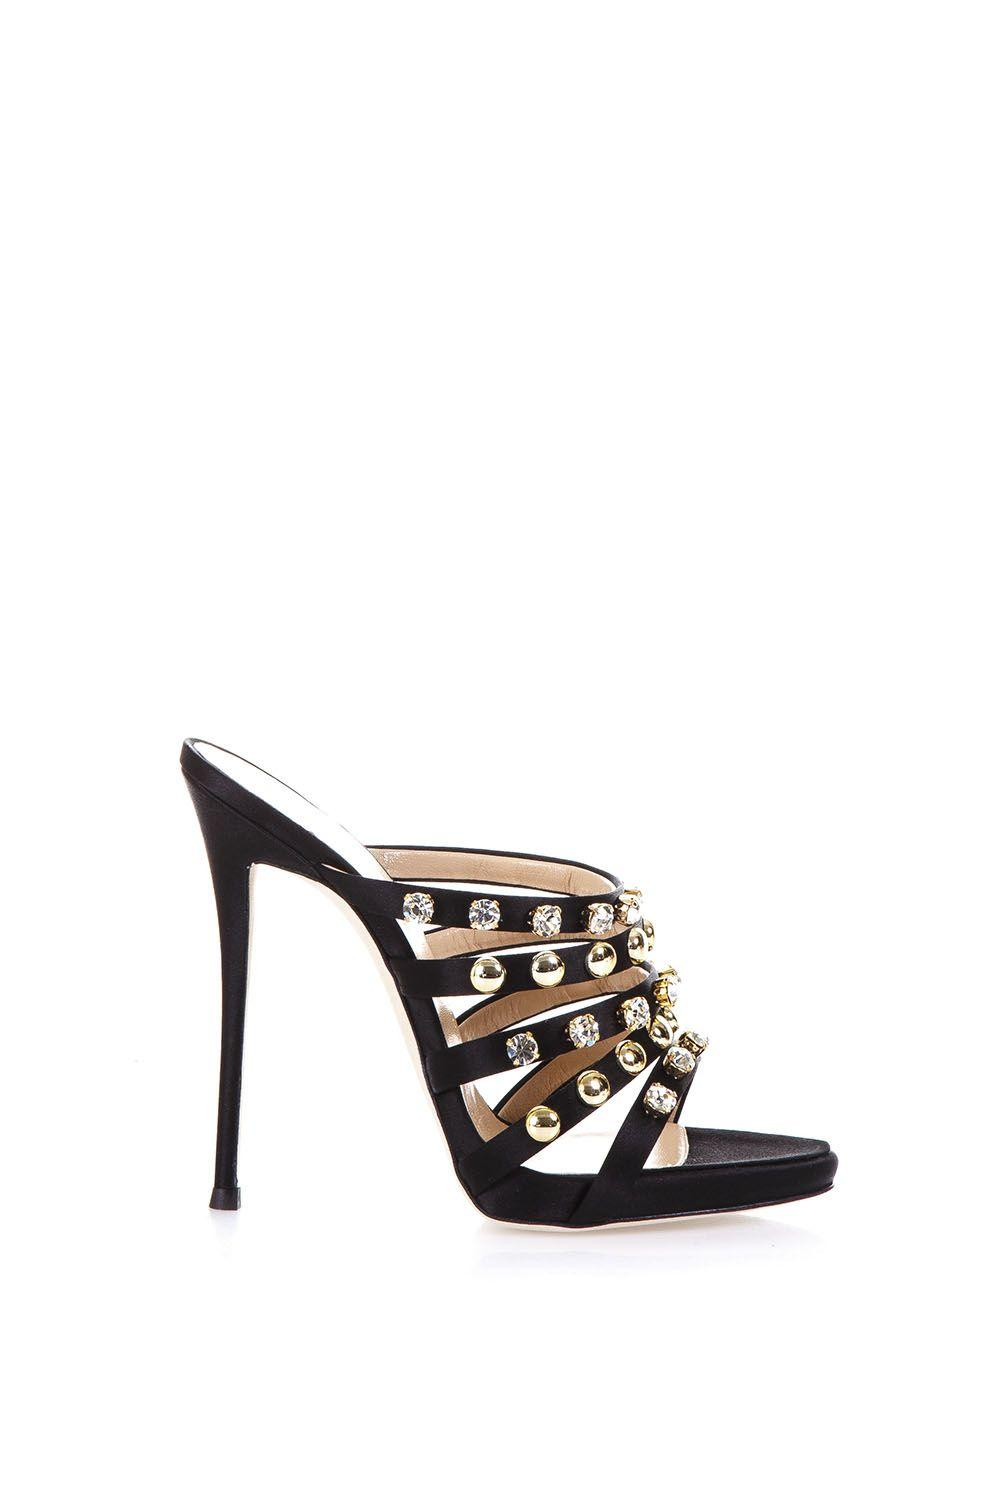 Giuseppe Zanotti Camilla Mules With Crystals And Studs In Black